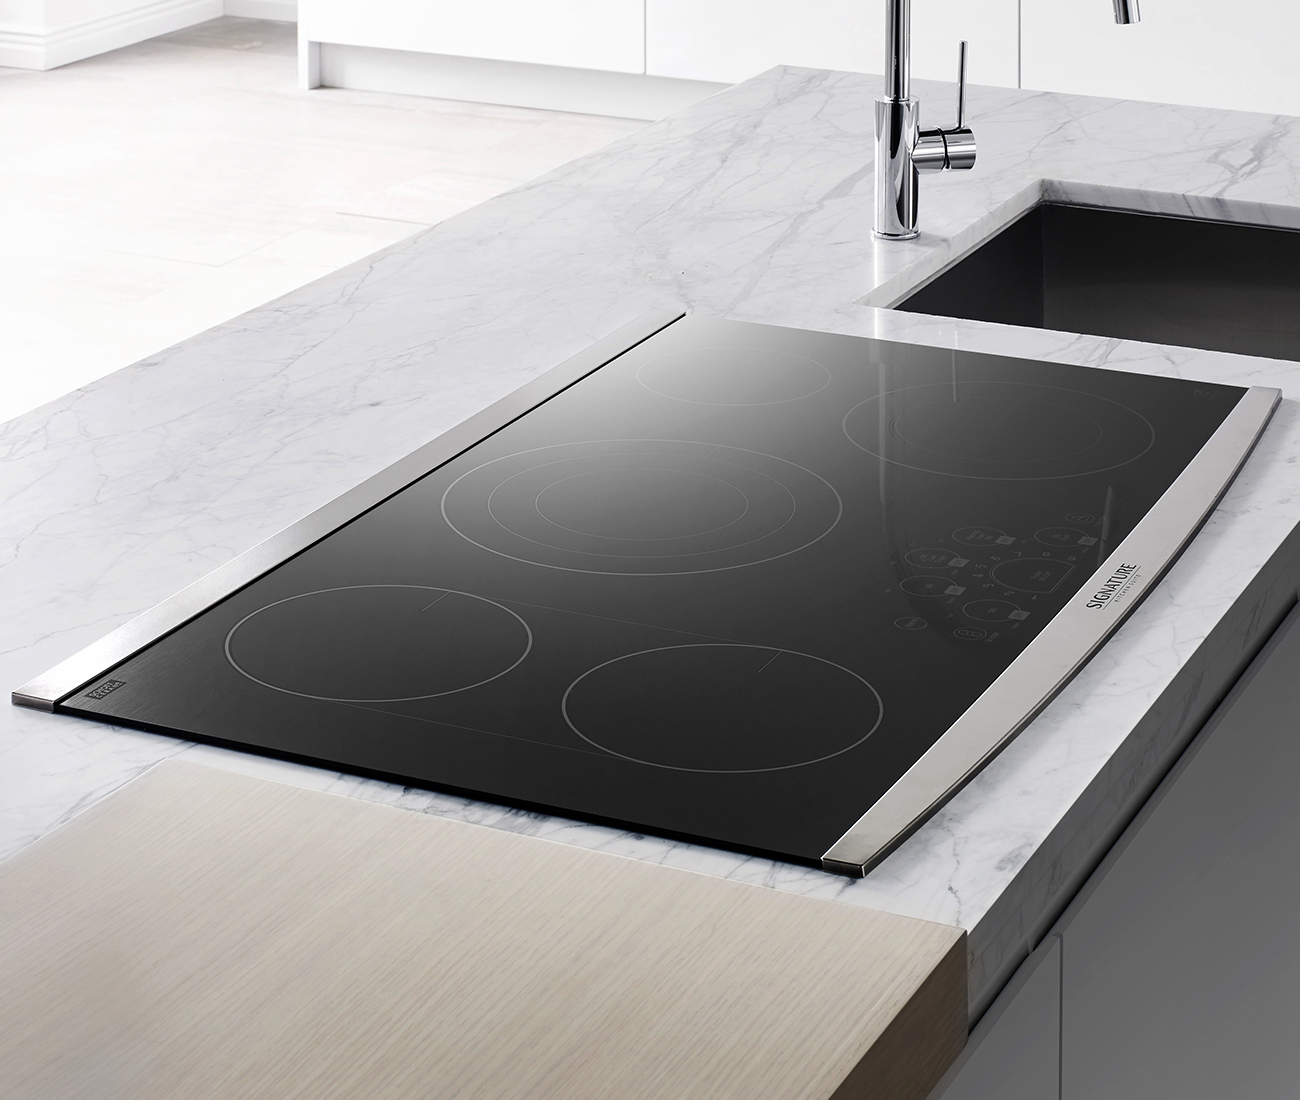 36-inch Electric Cooktop from Signature Kitchen Suite